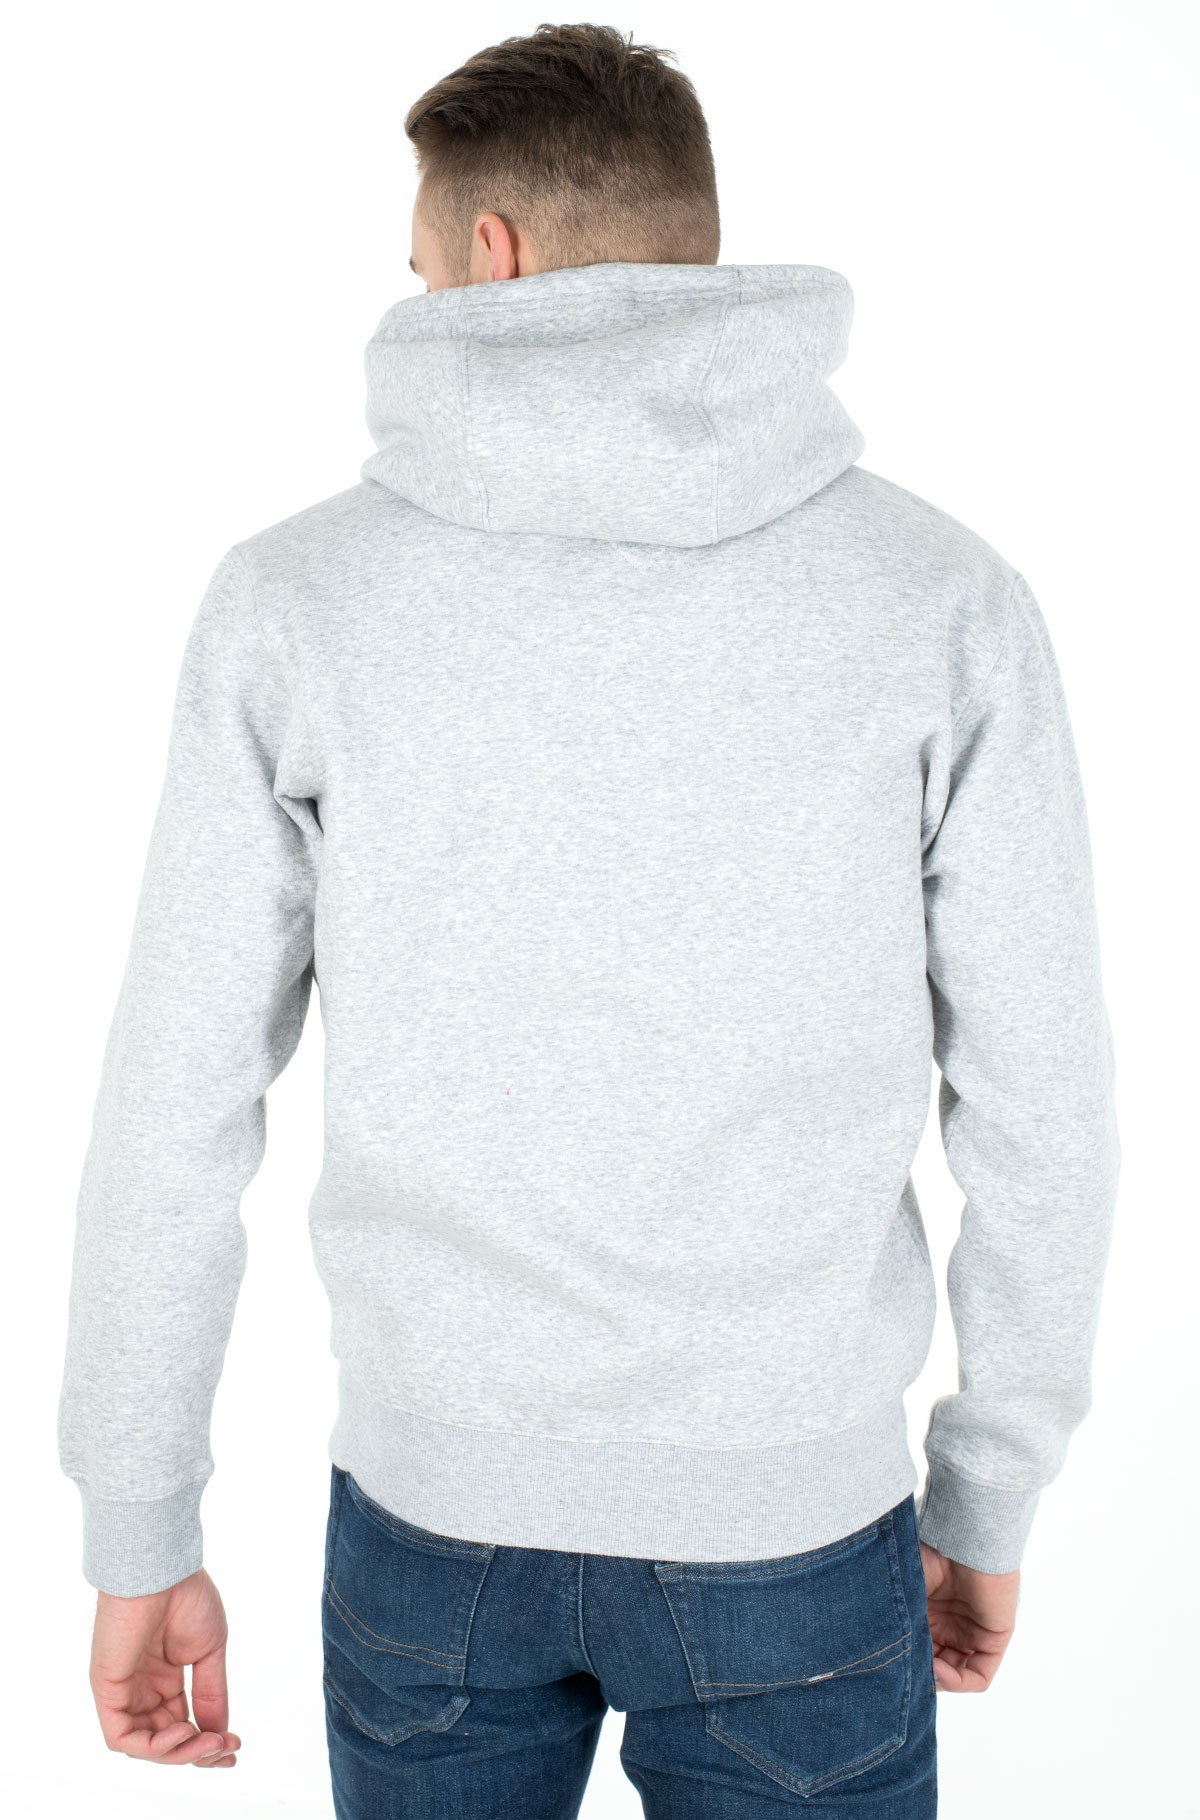 Dressipluus TJM REGULAR FLEECE ZIP HOODIE-full-2